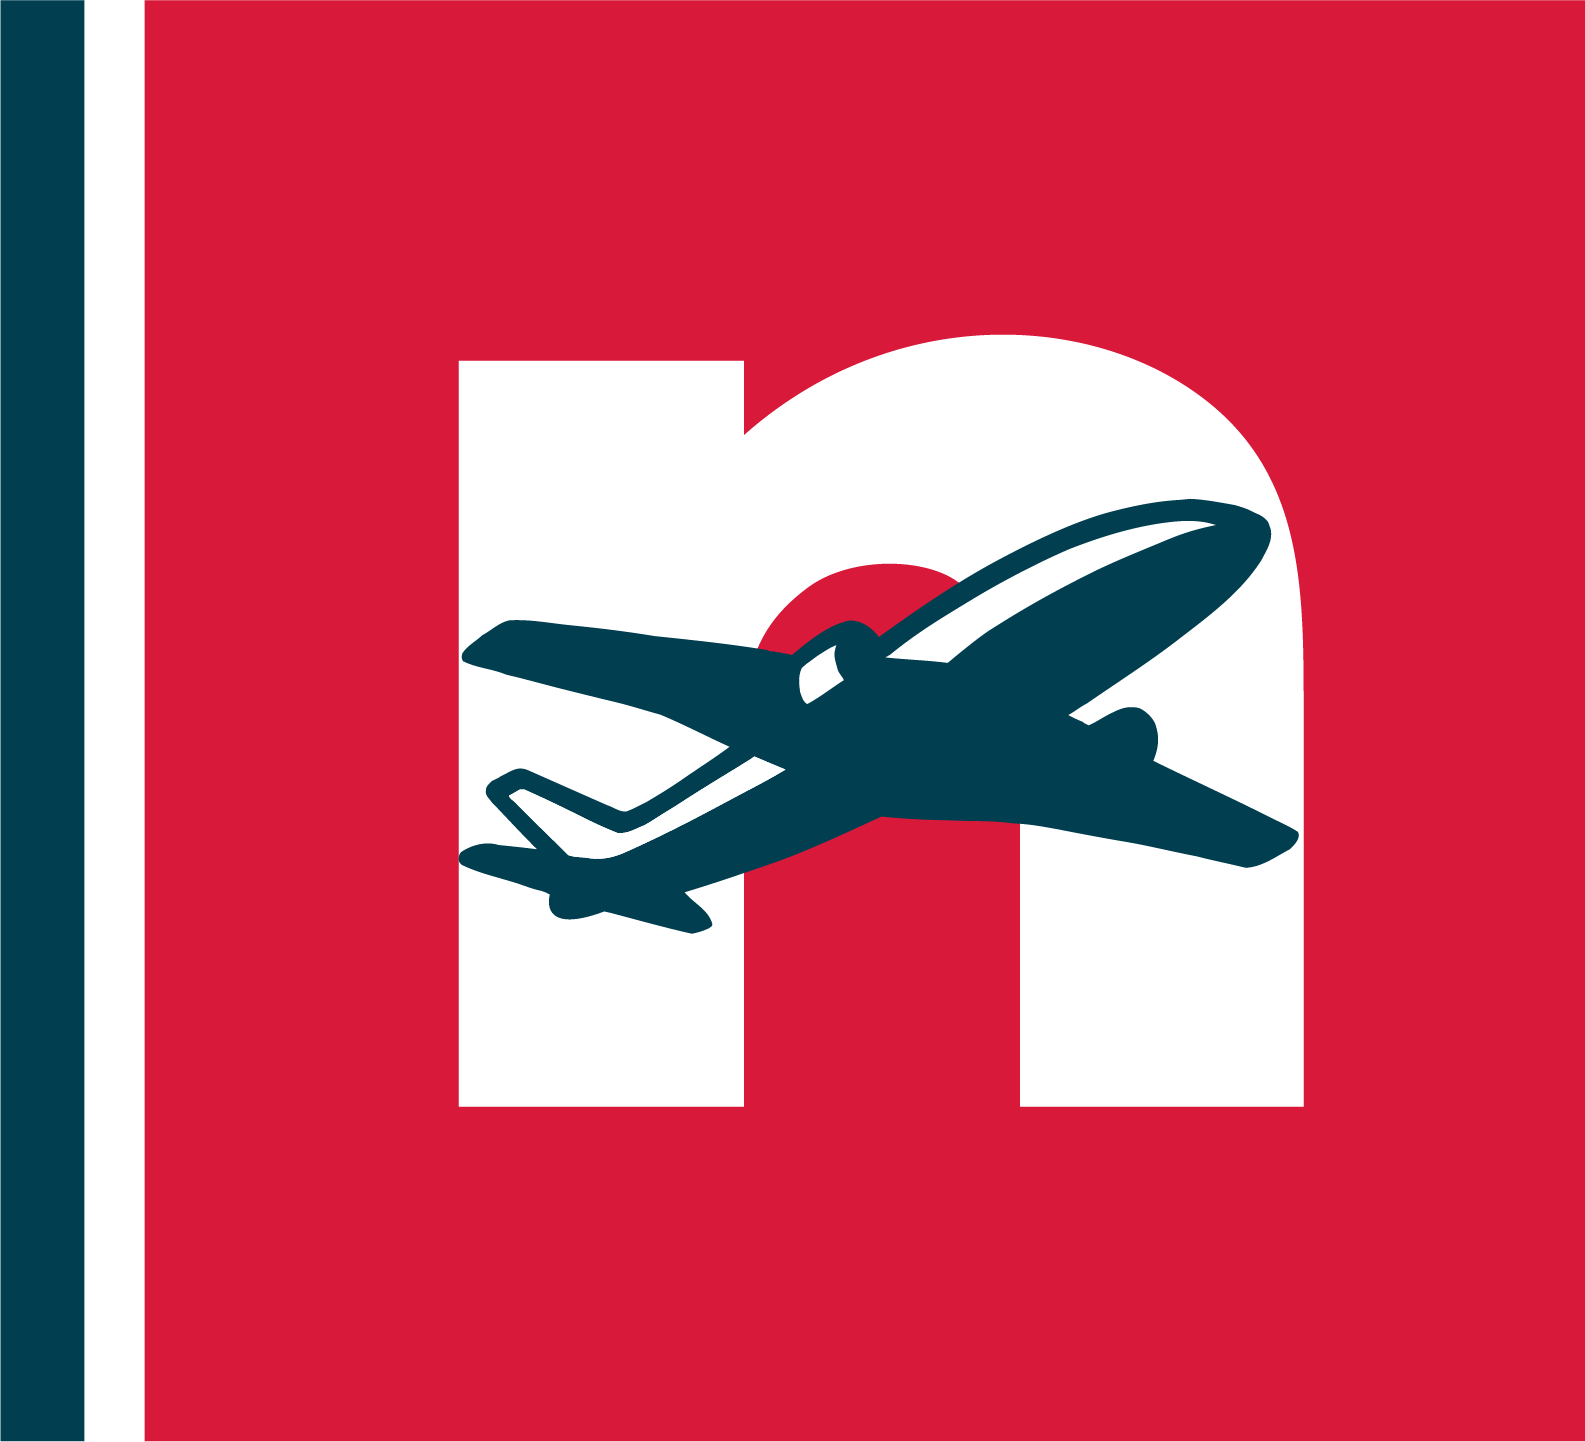 Norwegian Long Haul AS